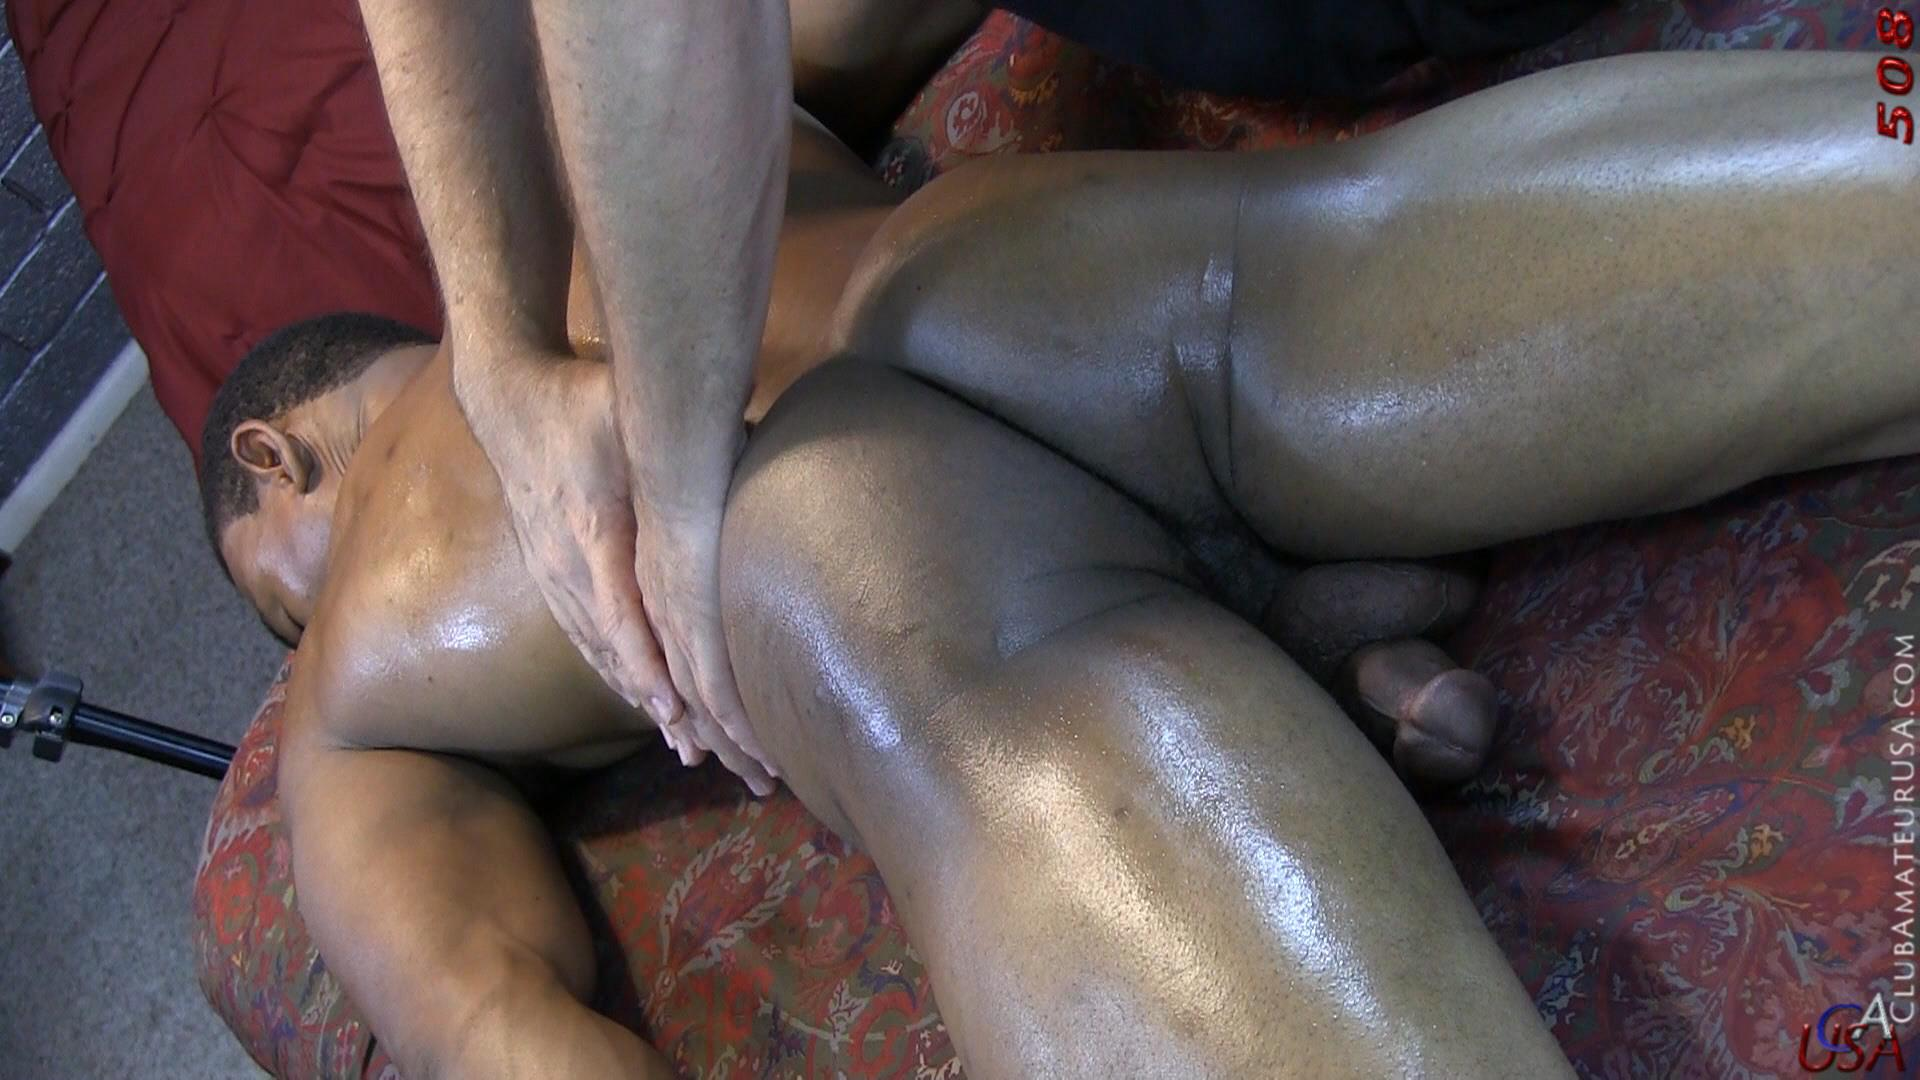 Club-Amateur-USA-Gracen-Straight-Big-Black-Cock-Getting-Sucked-With-Cum-Amateur-Gay-Porn-05 Straight Ghetto Thug Gets A Massage With A Happy Ending From A Guy